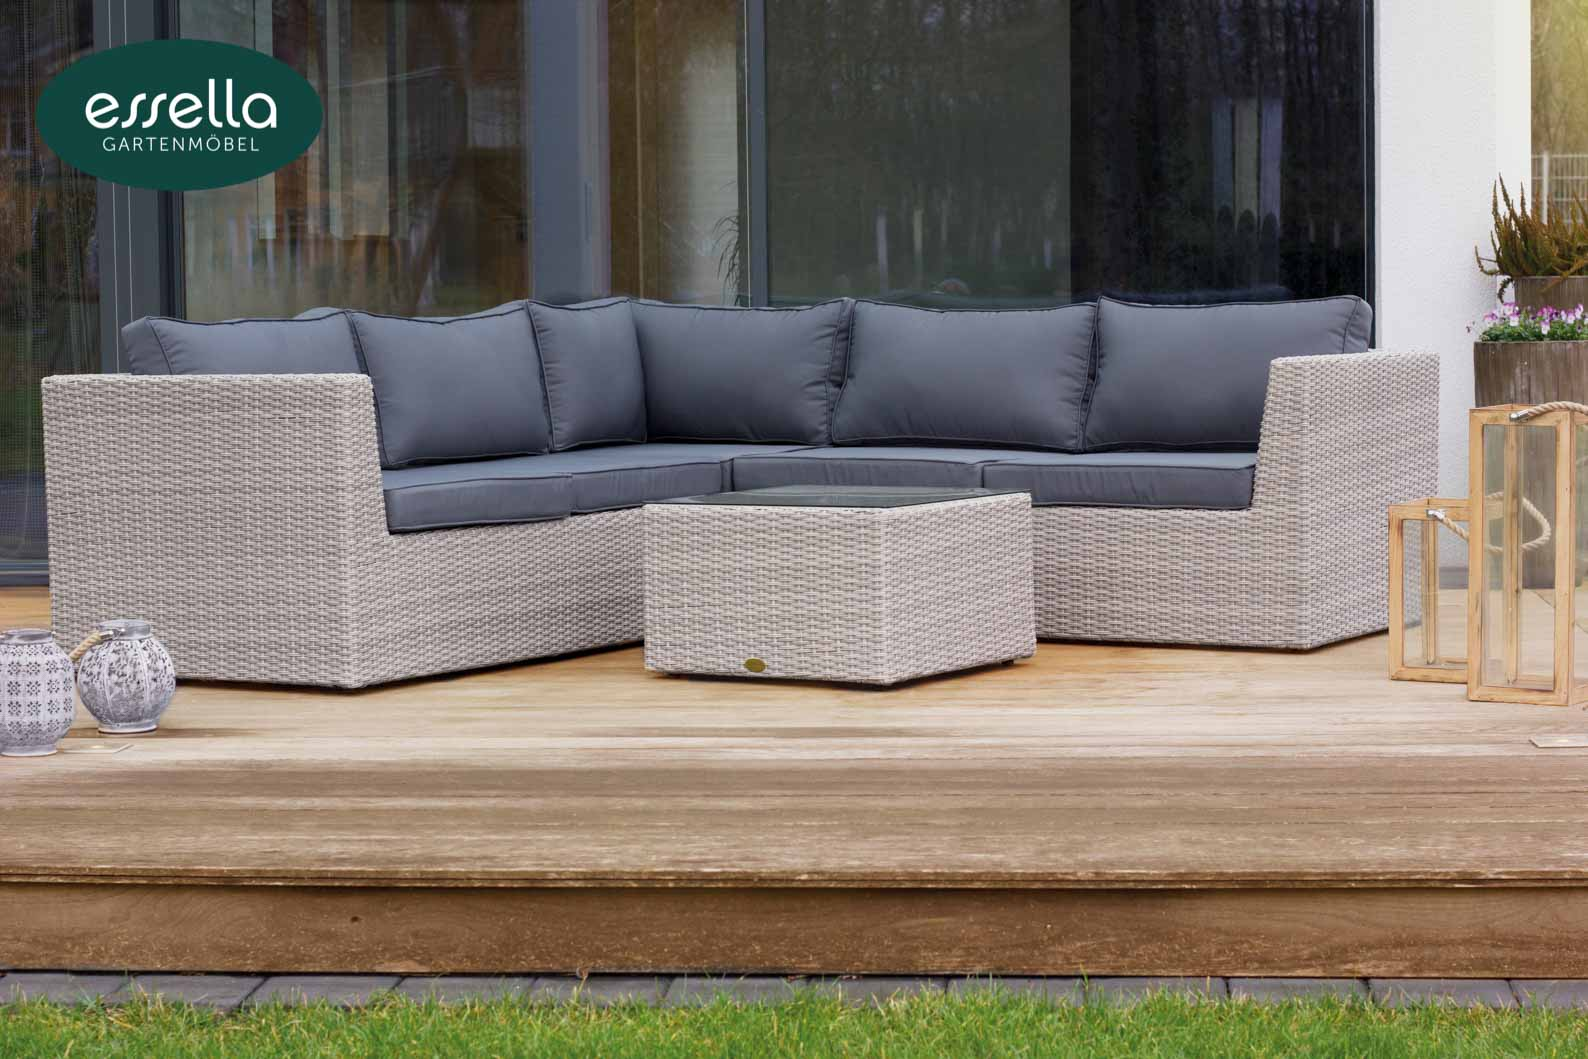 Essella Polyrattan Loungemöbel Oslo Rundgeflecht Too Design Gartenmöbel